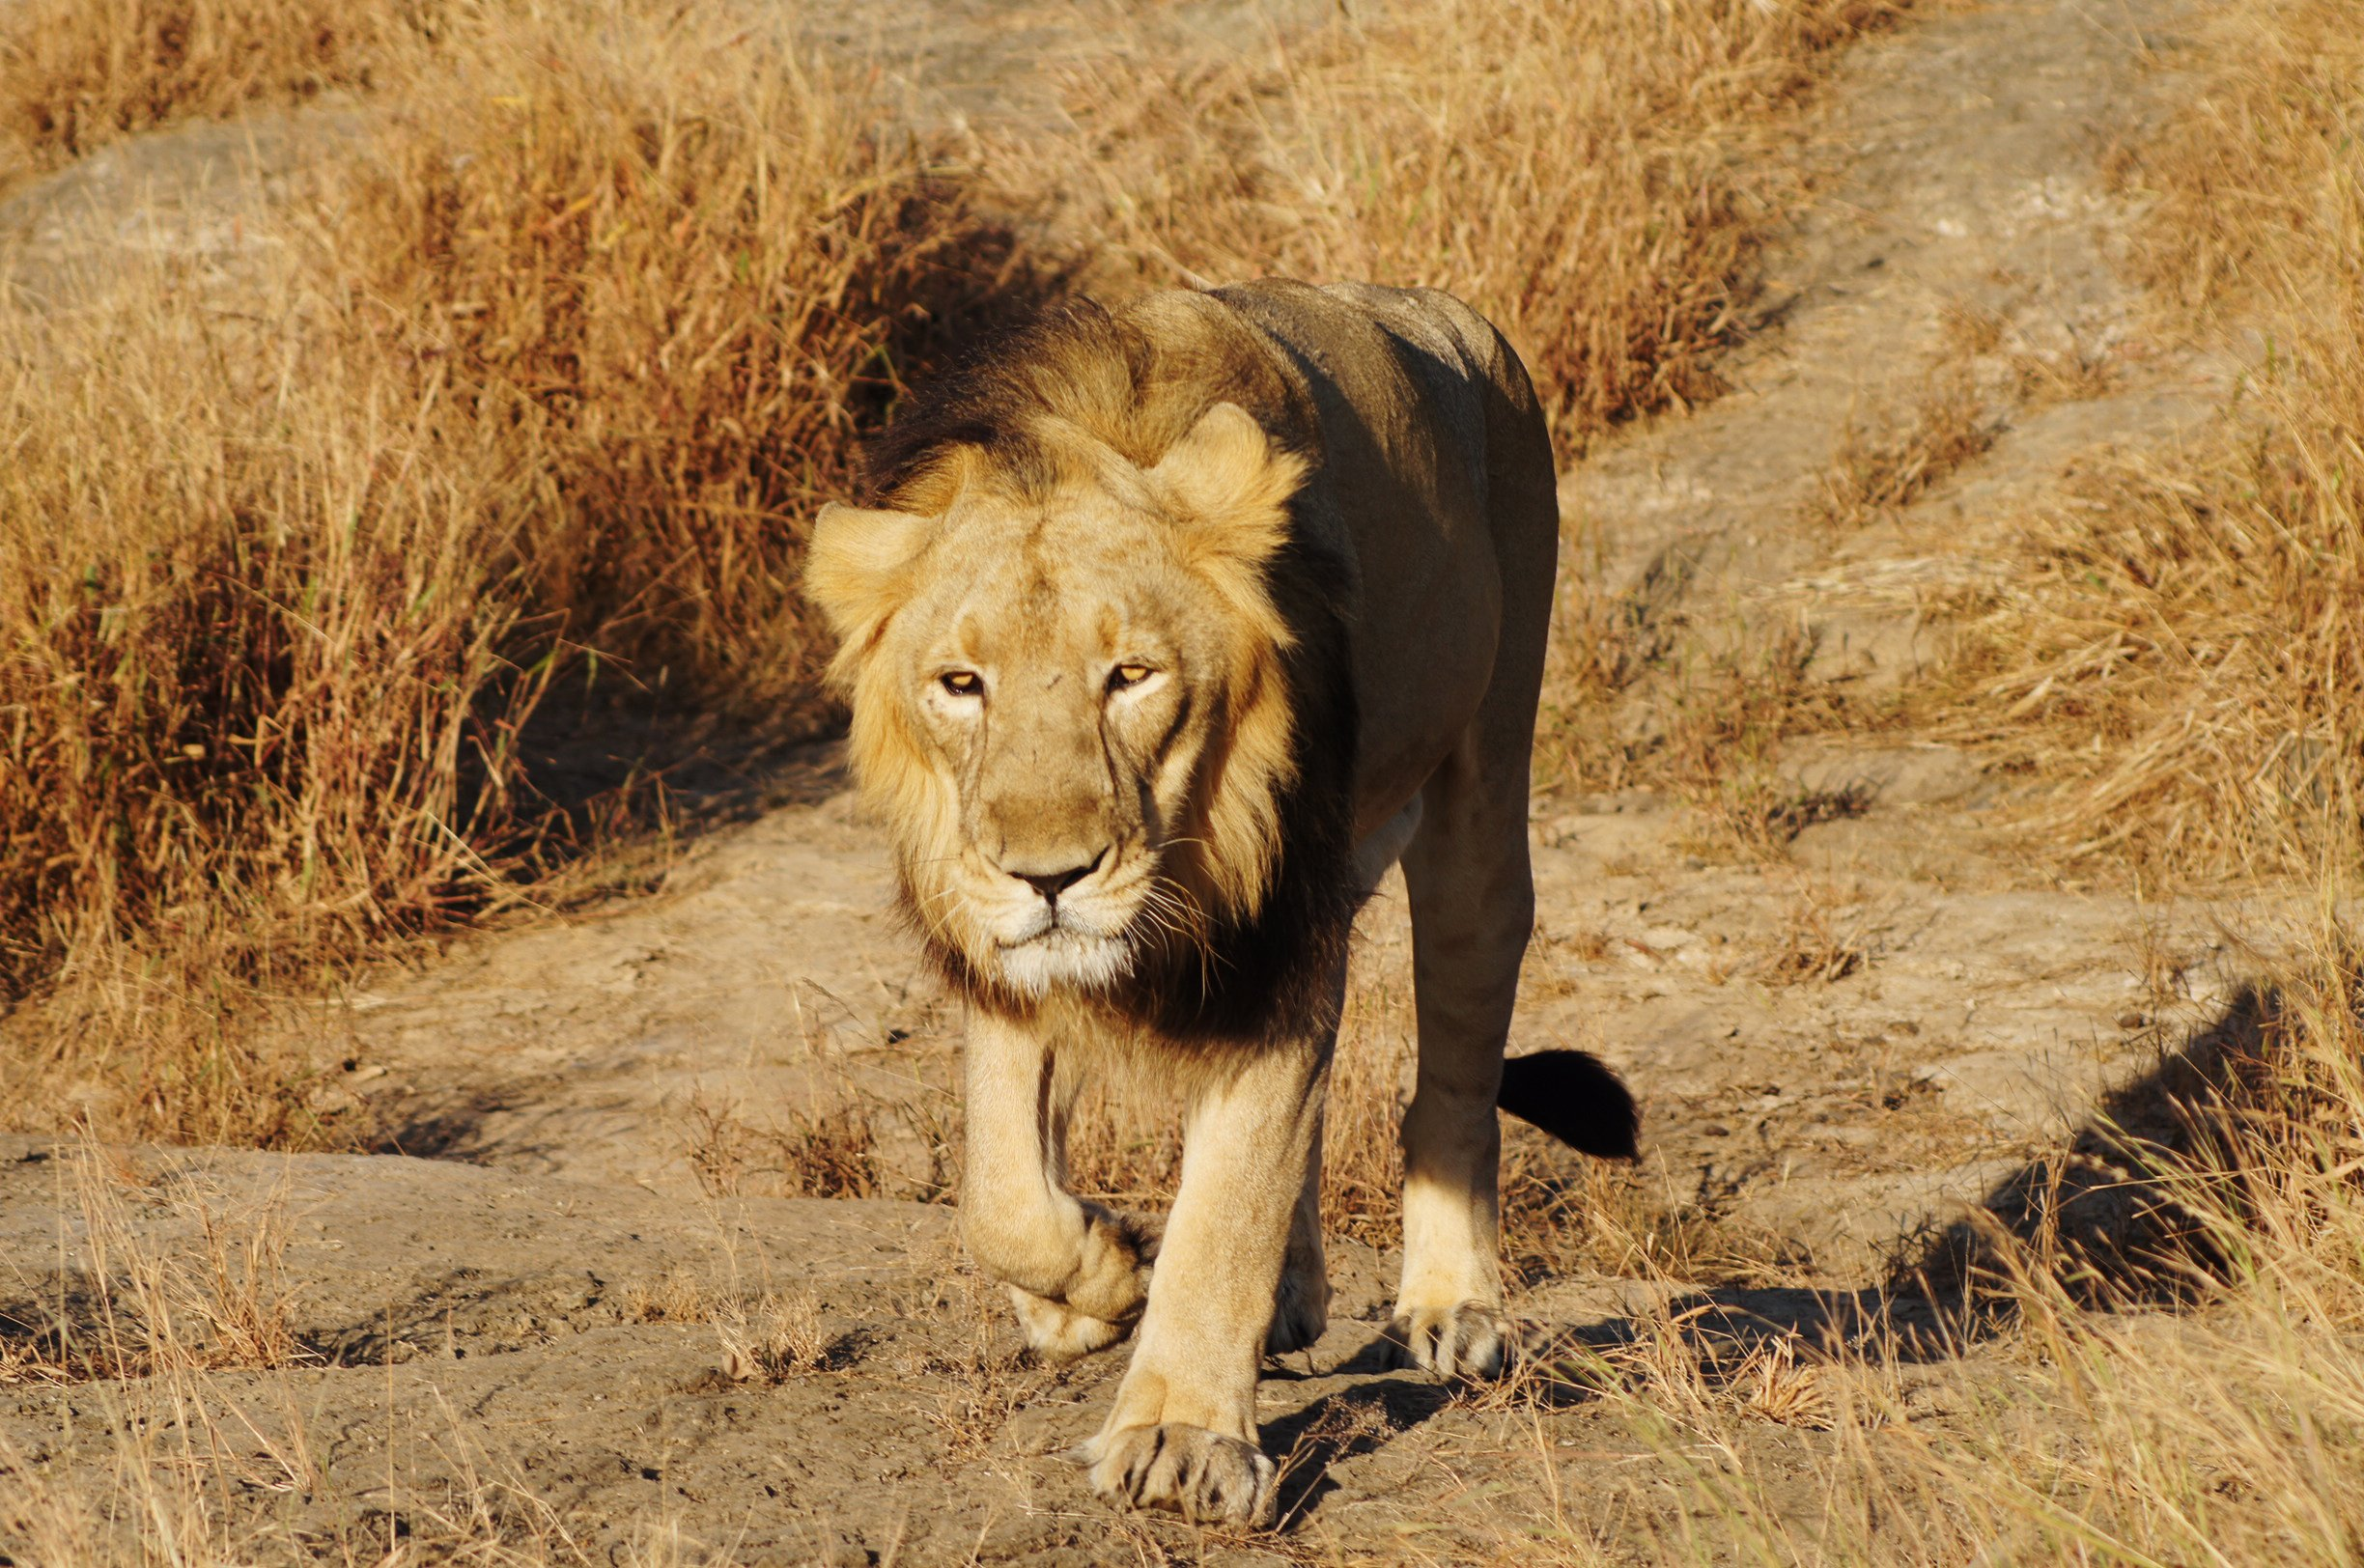 Asiatic lion facts | Zoological Society of London (ZSL)